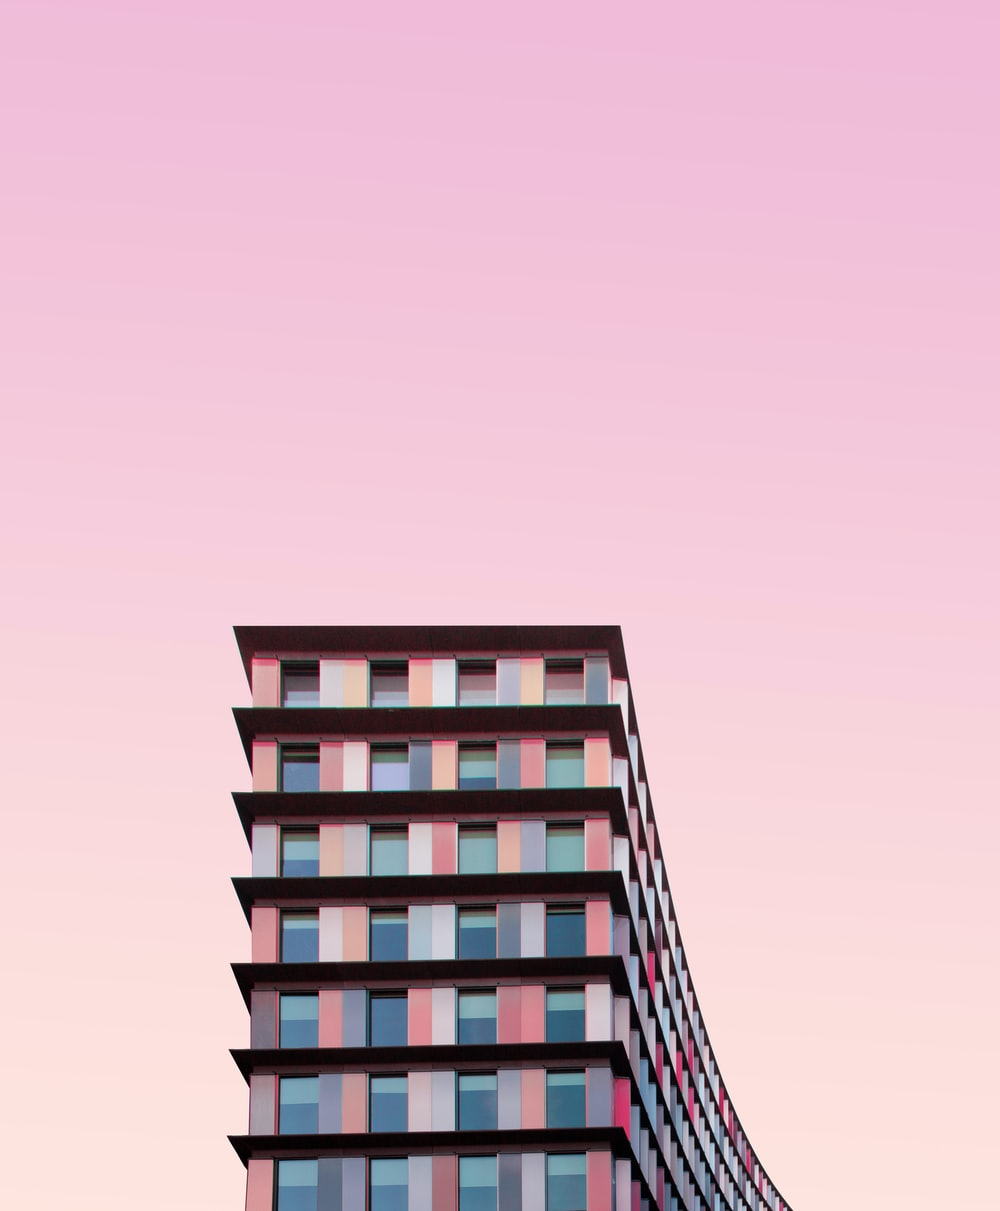 white and pink concrete building during daytime